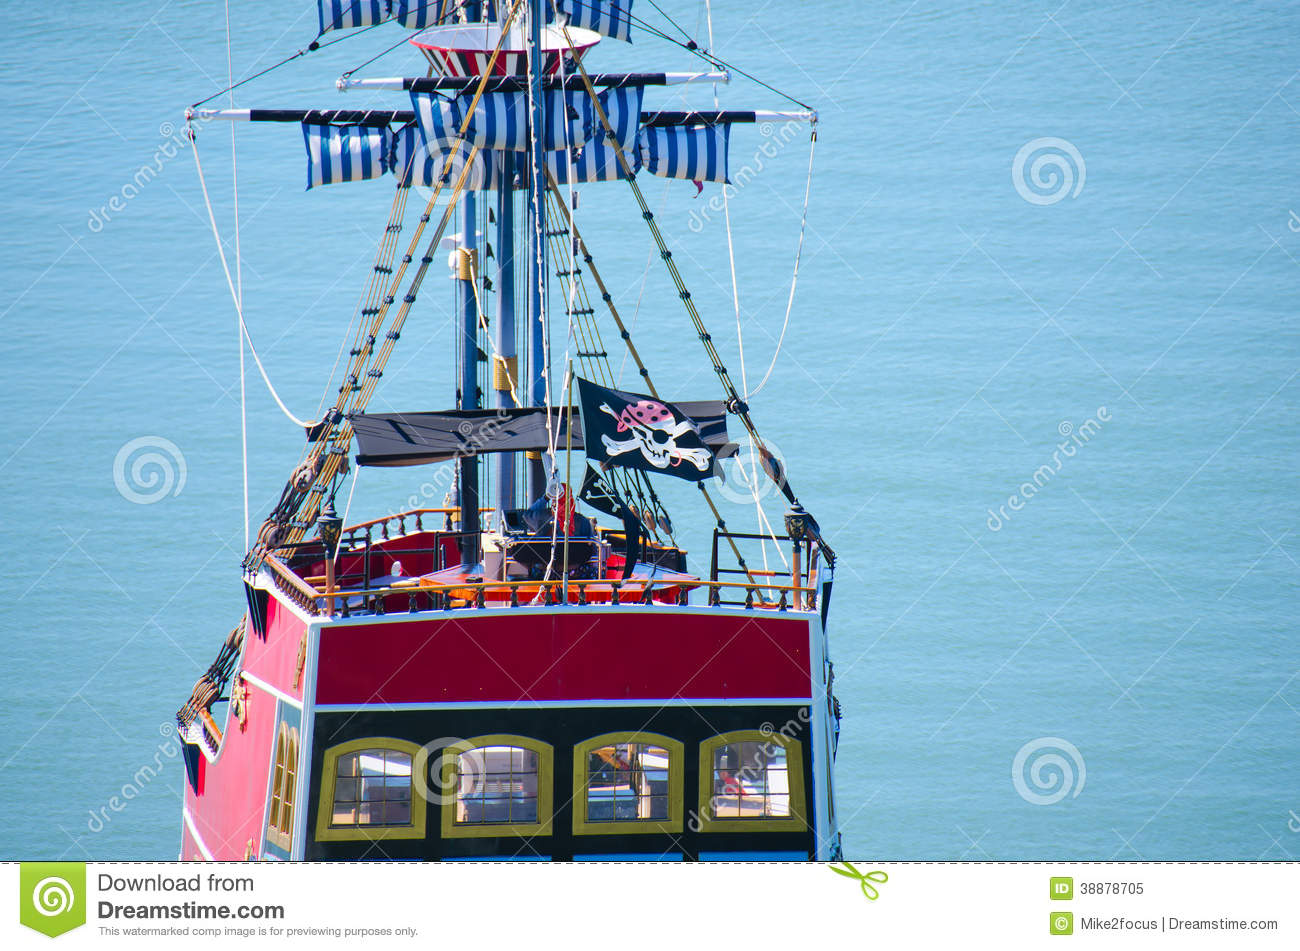 Red pirate ship with Jolly Roger flag closeup